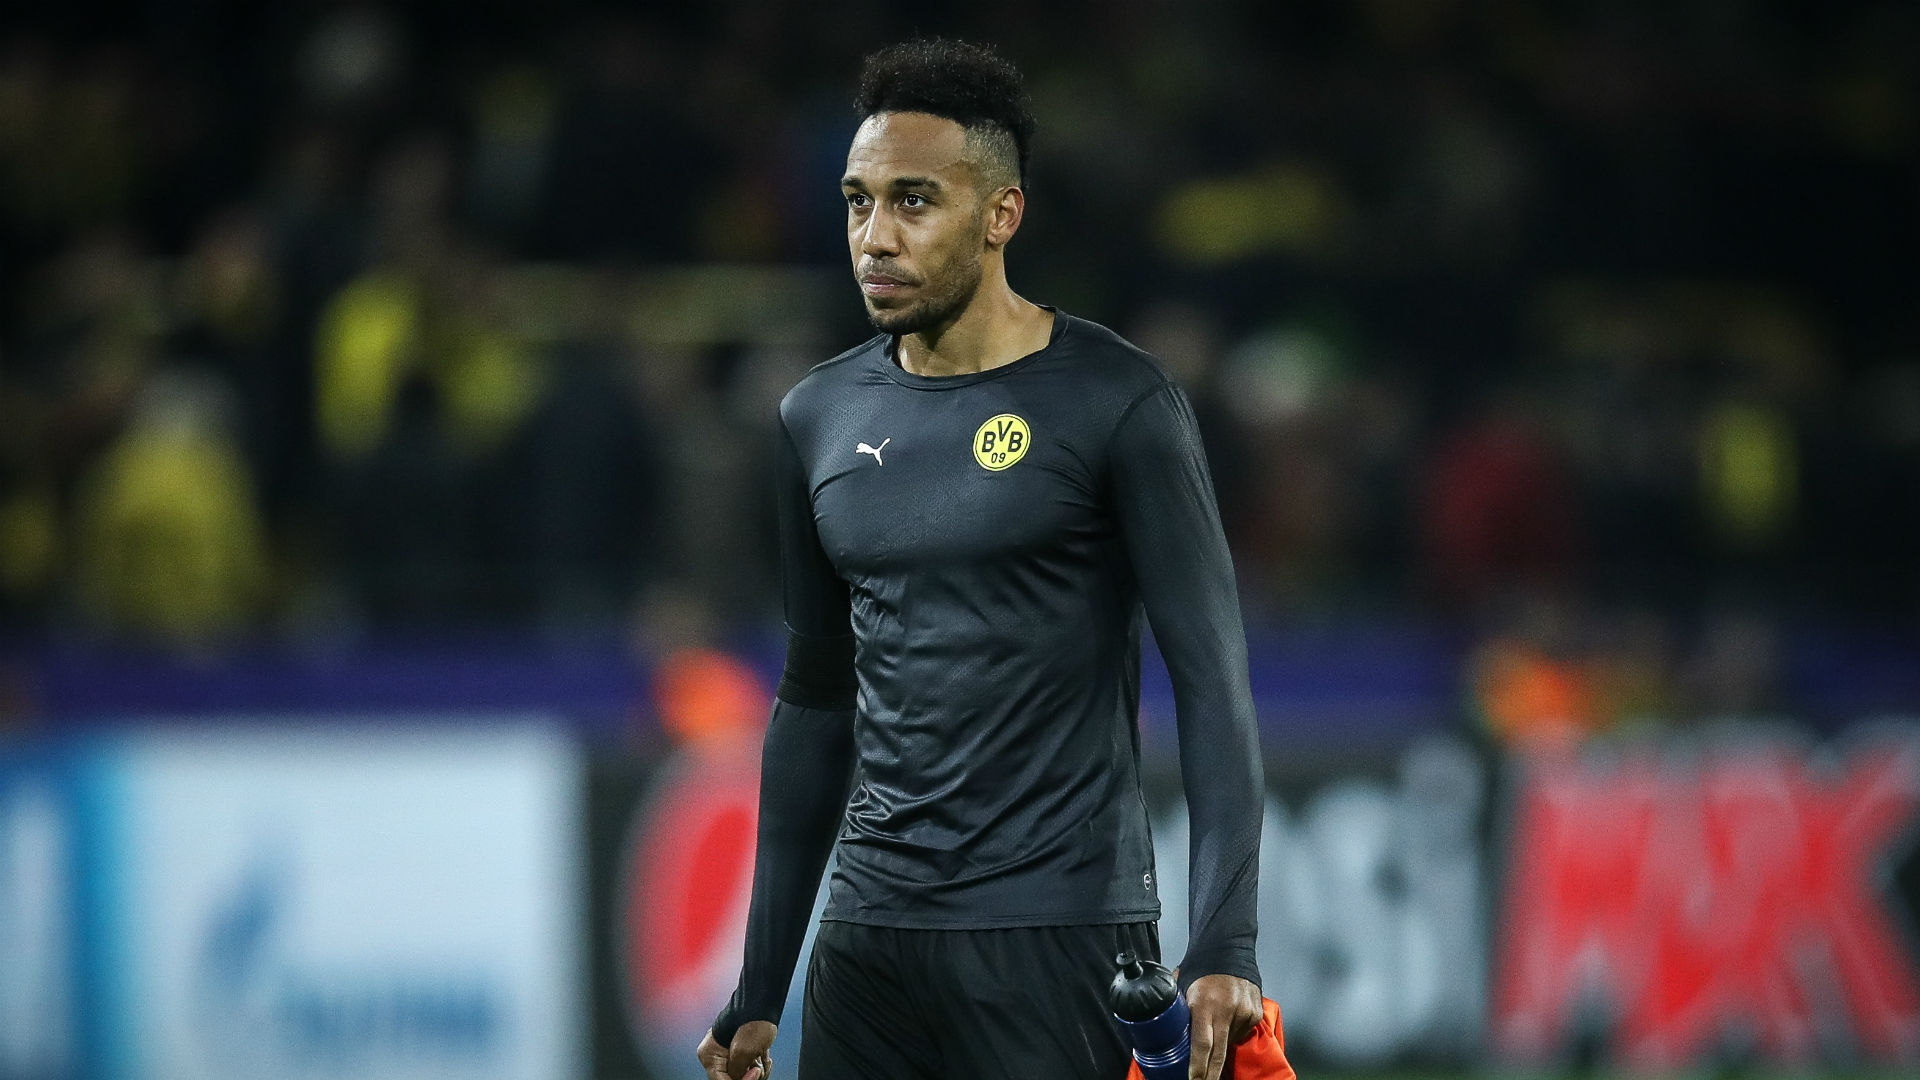 Aubameyang not to blame for Dortmund's woes, says Zorc